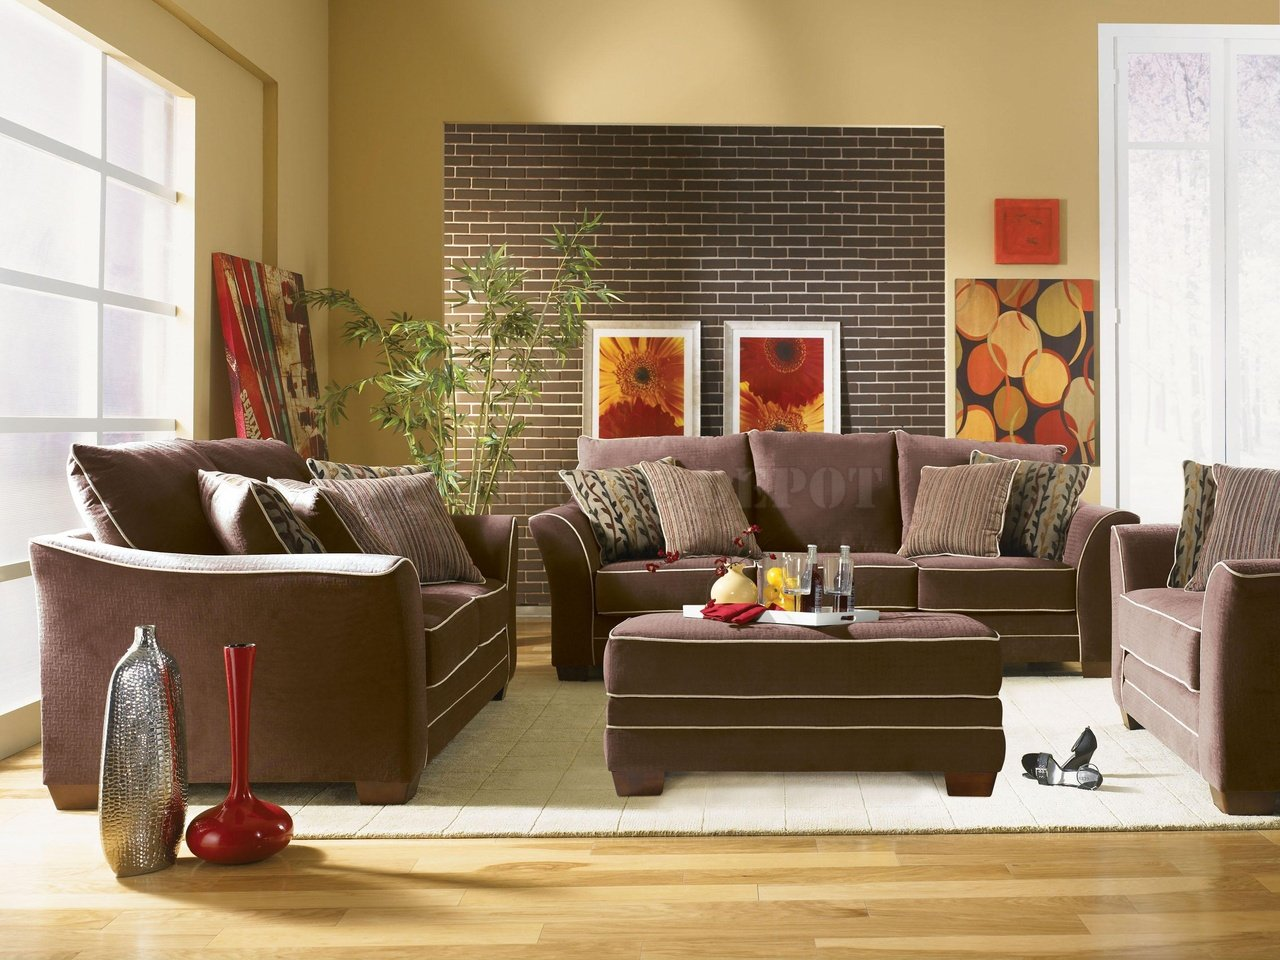 Interior design ideas interior designs home design ideas for Home decorating ideas living room furniture